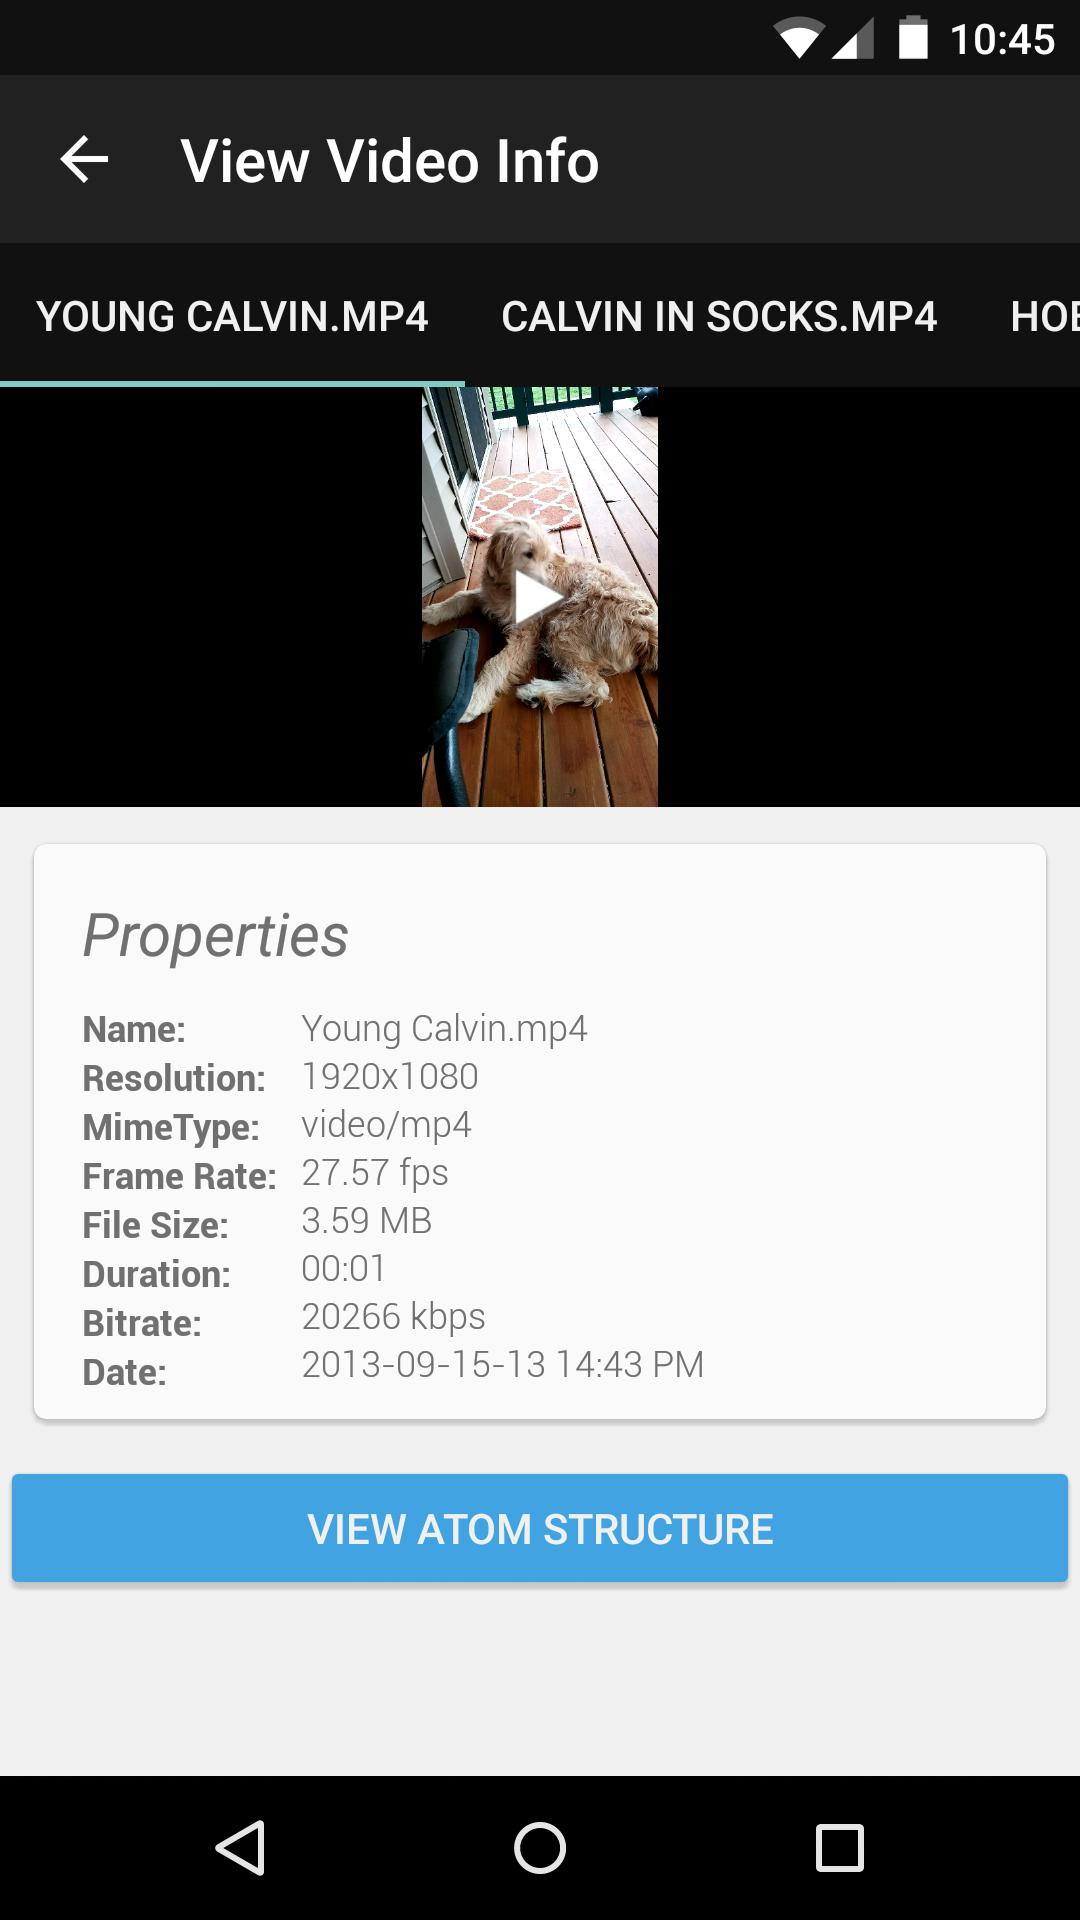 Video Info Viewer for Android - APK Download